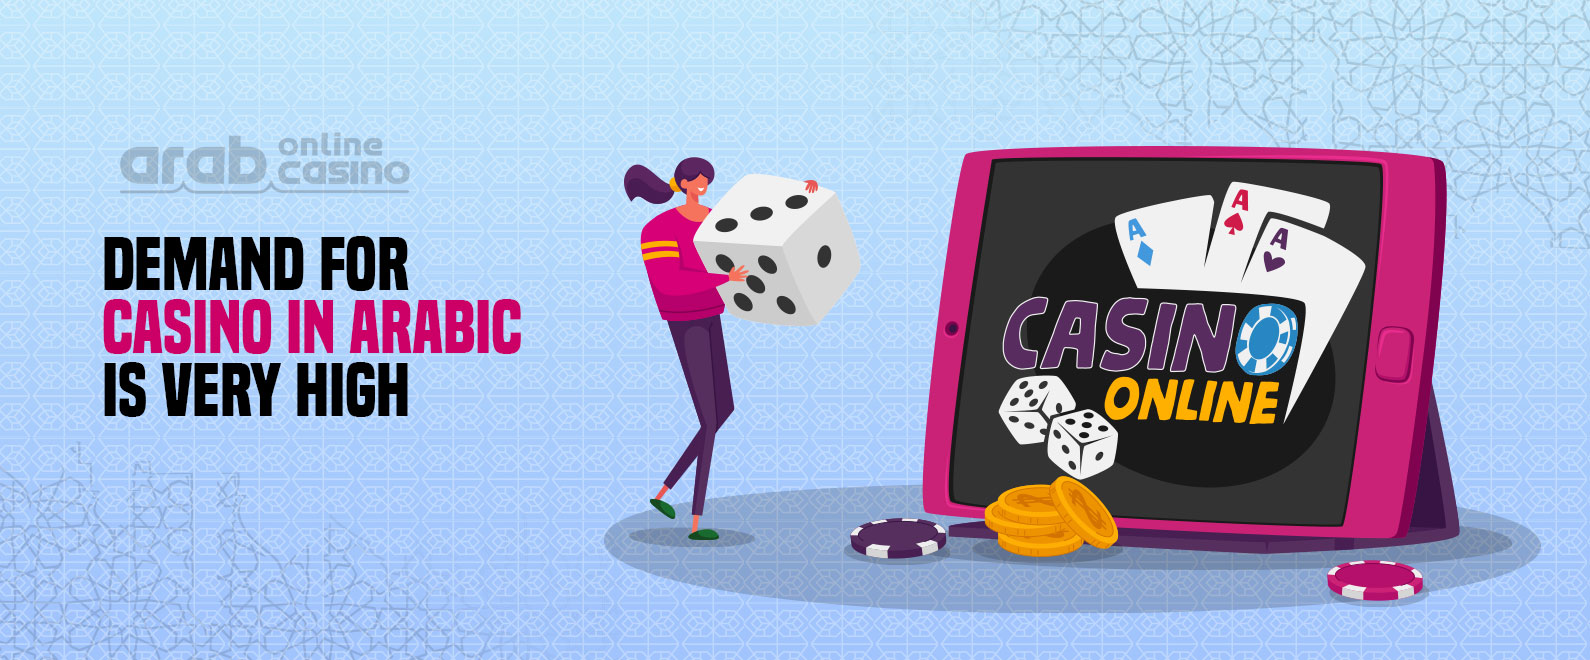 Demand for Casino in Arabic is Very High in 2021